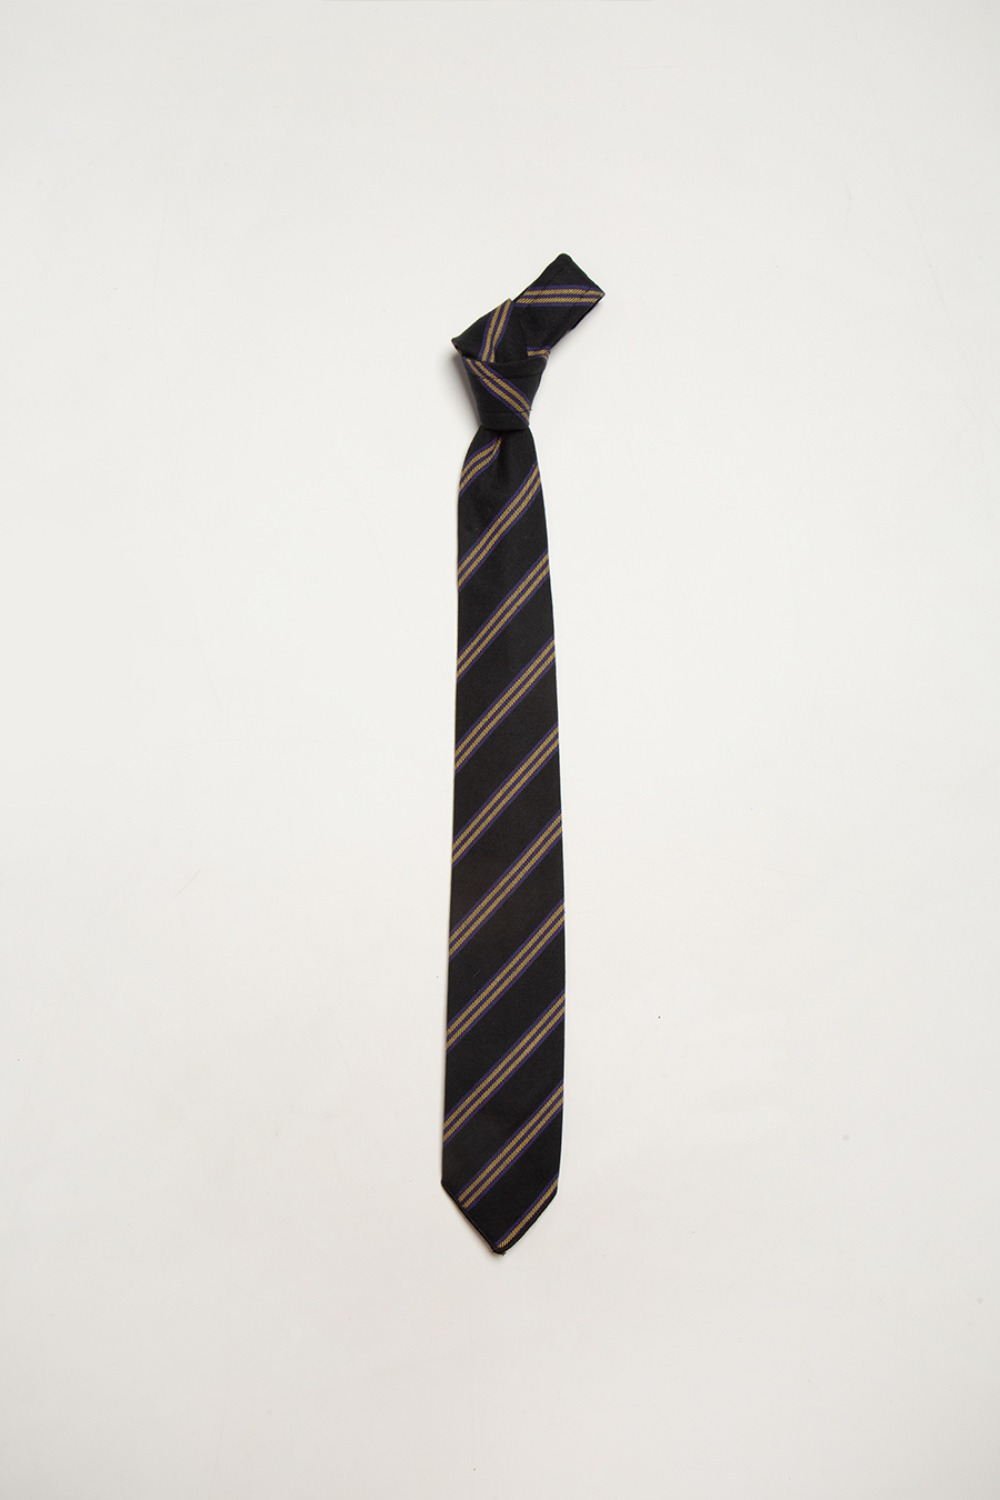 NECK TIE BLACK HEAVY TWILL REGENT